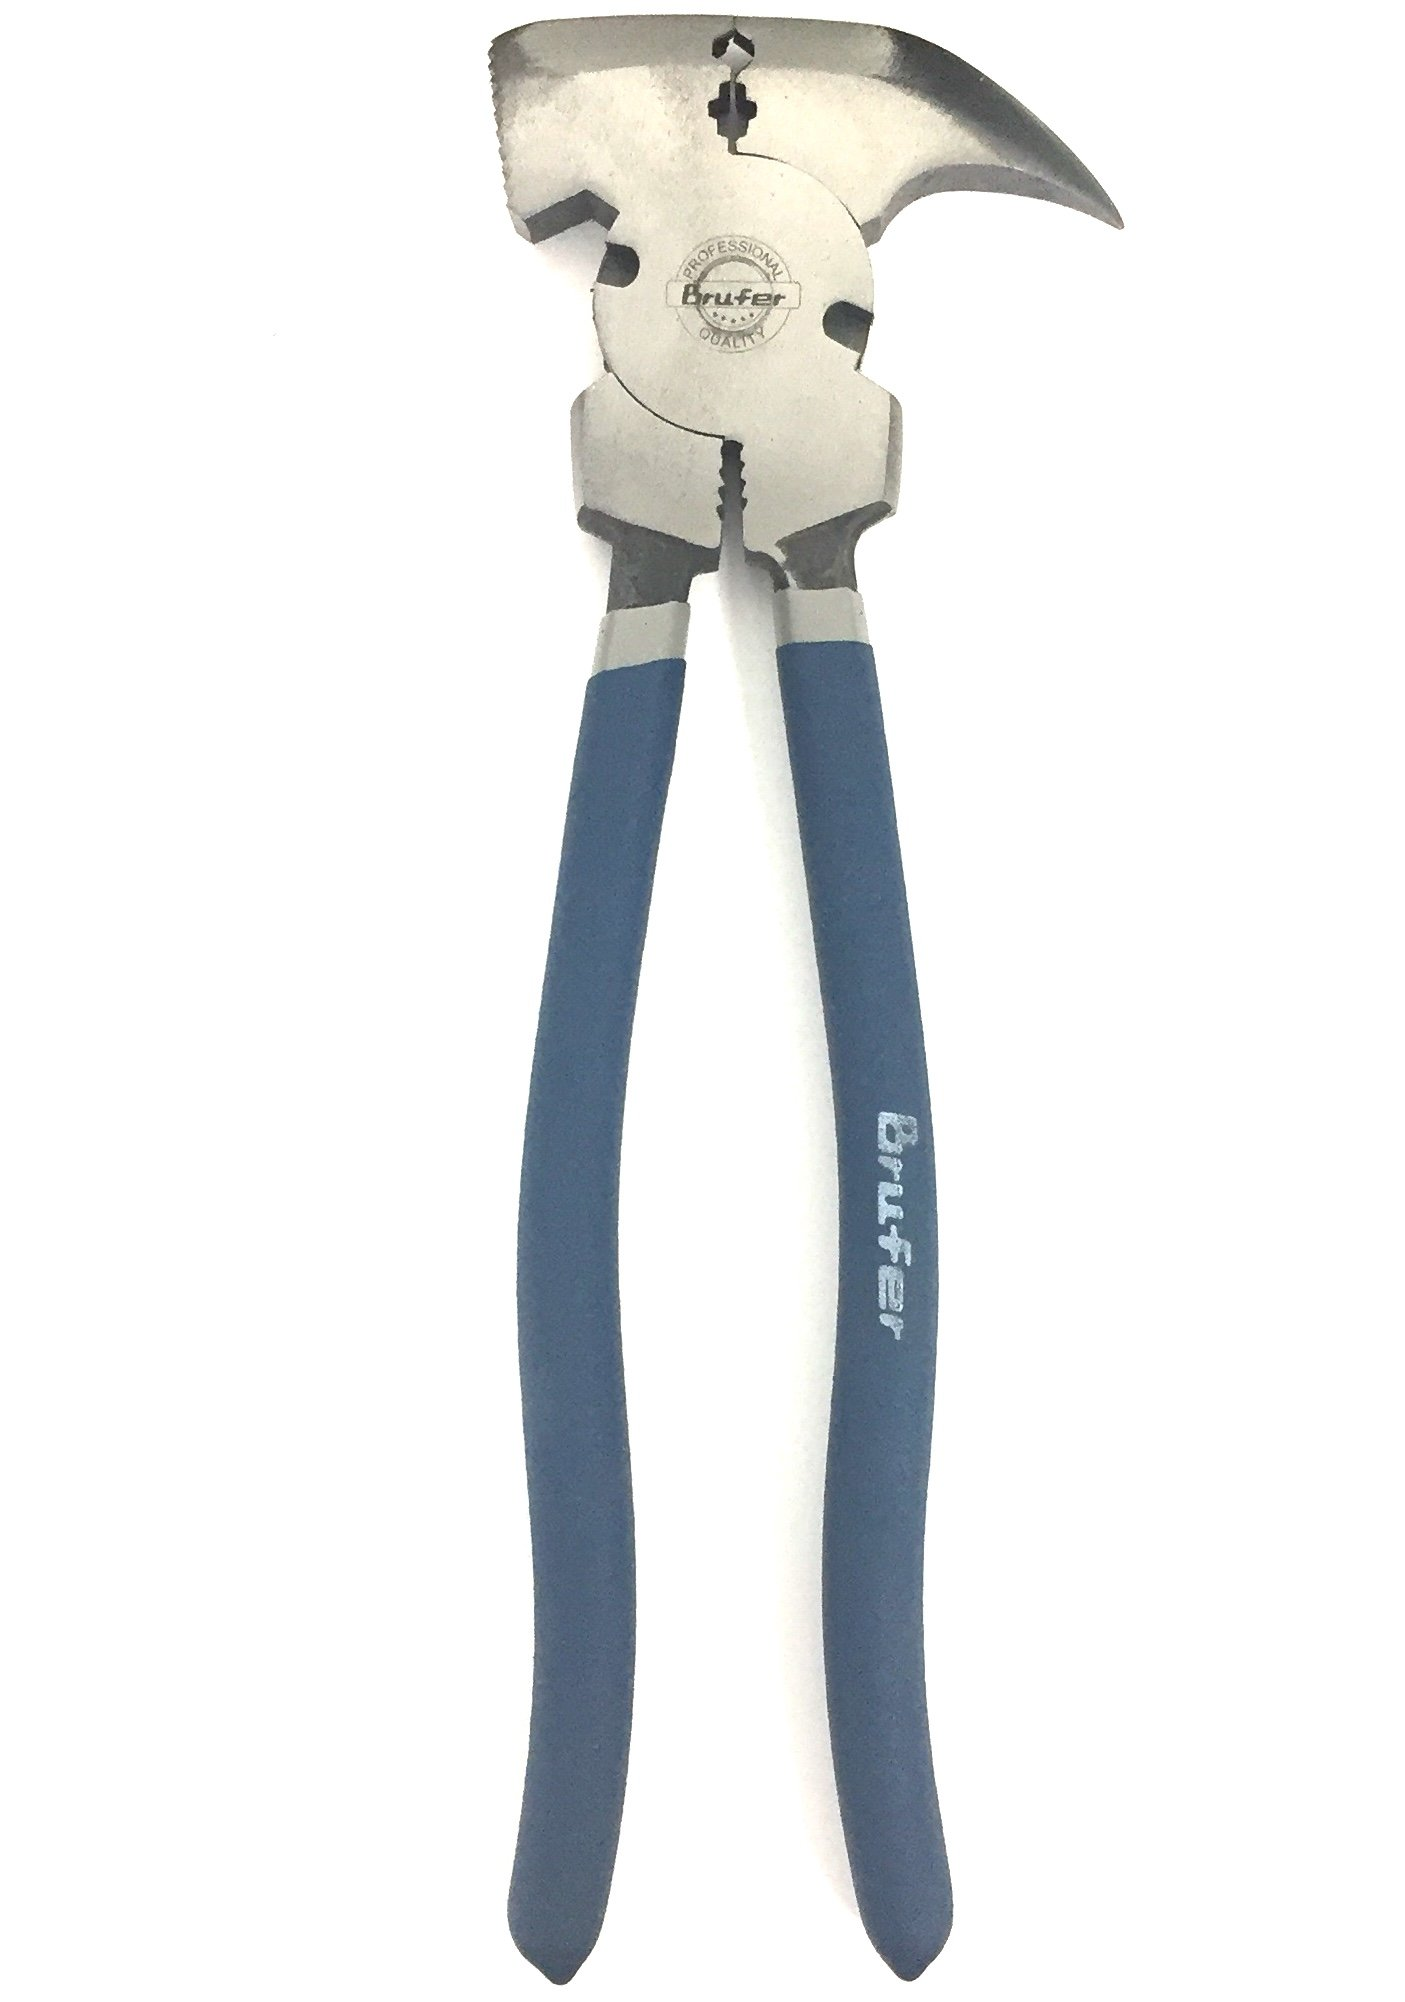 BRUFER 201195 Fence Plier Tool, 10.5-Inch